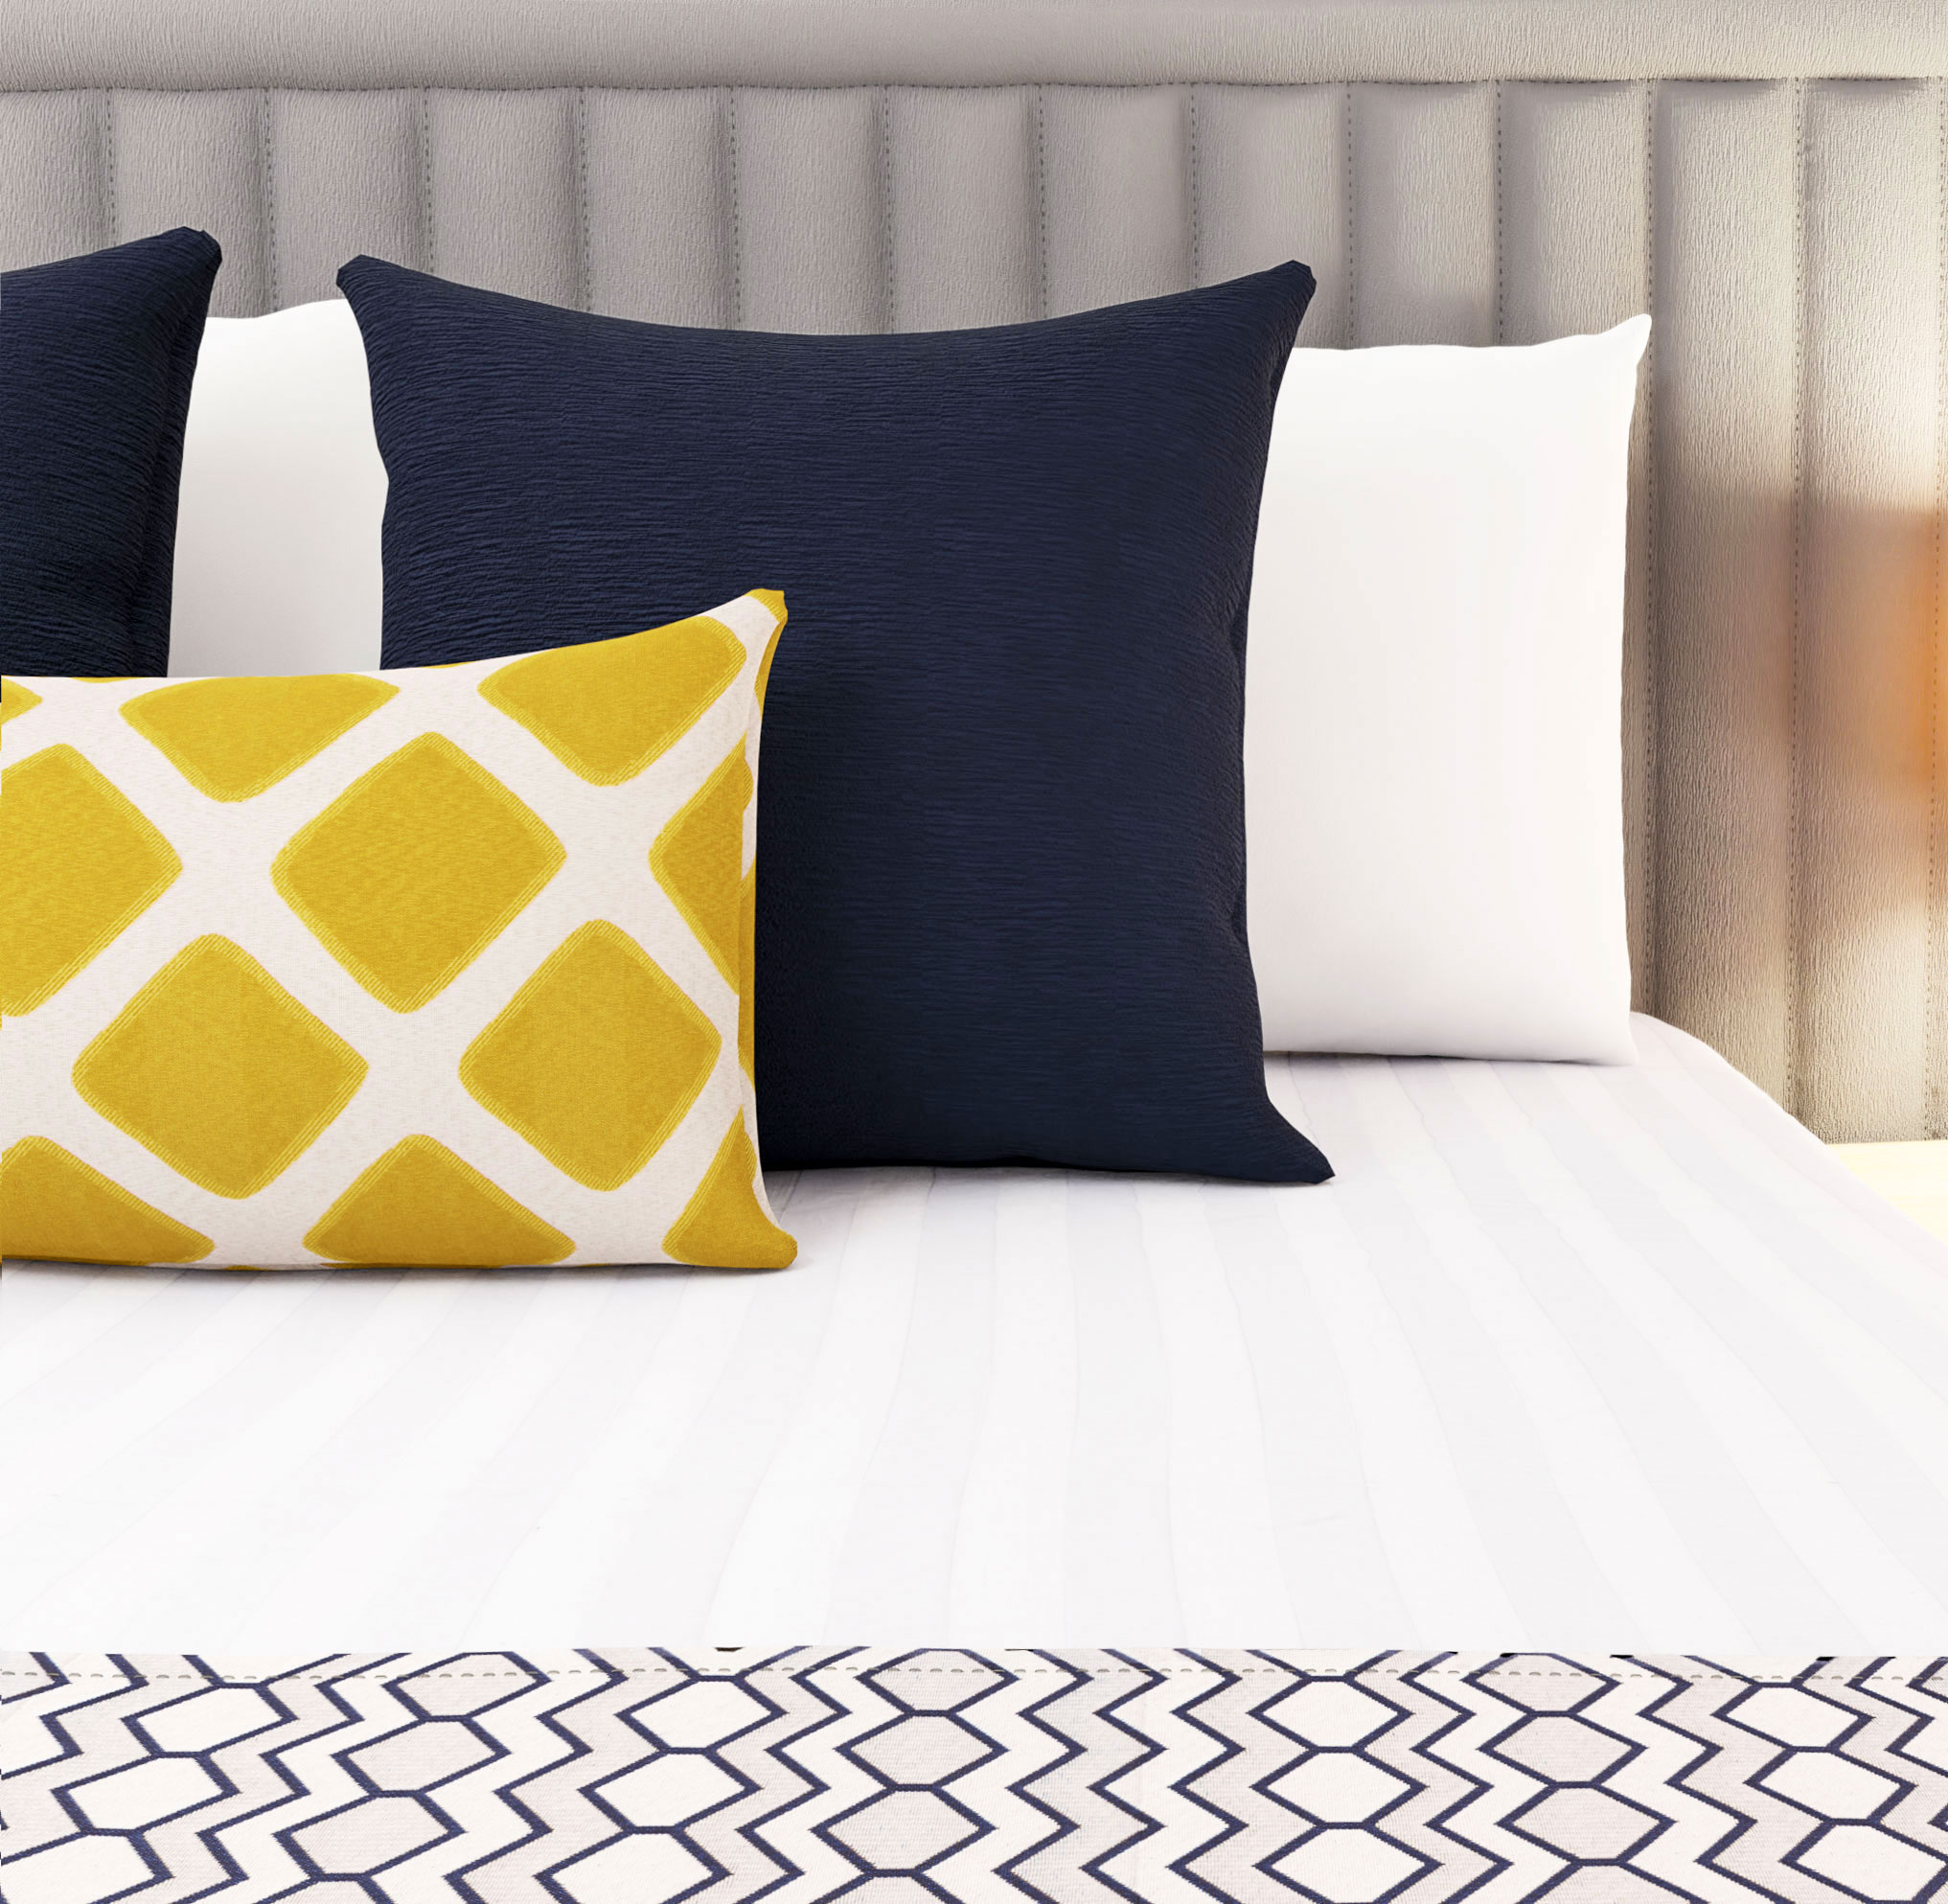 HotelHome Star Concept Navy Luxury Runner, Gen Mustard Breakfast Cushion, Persia Royal Large Decorative Cushions